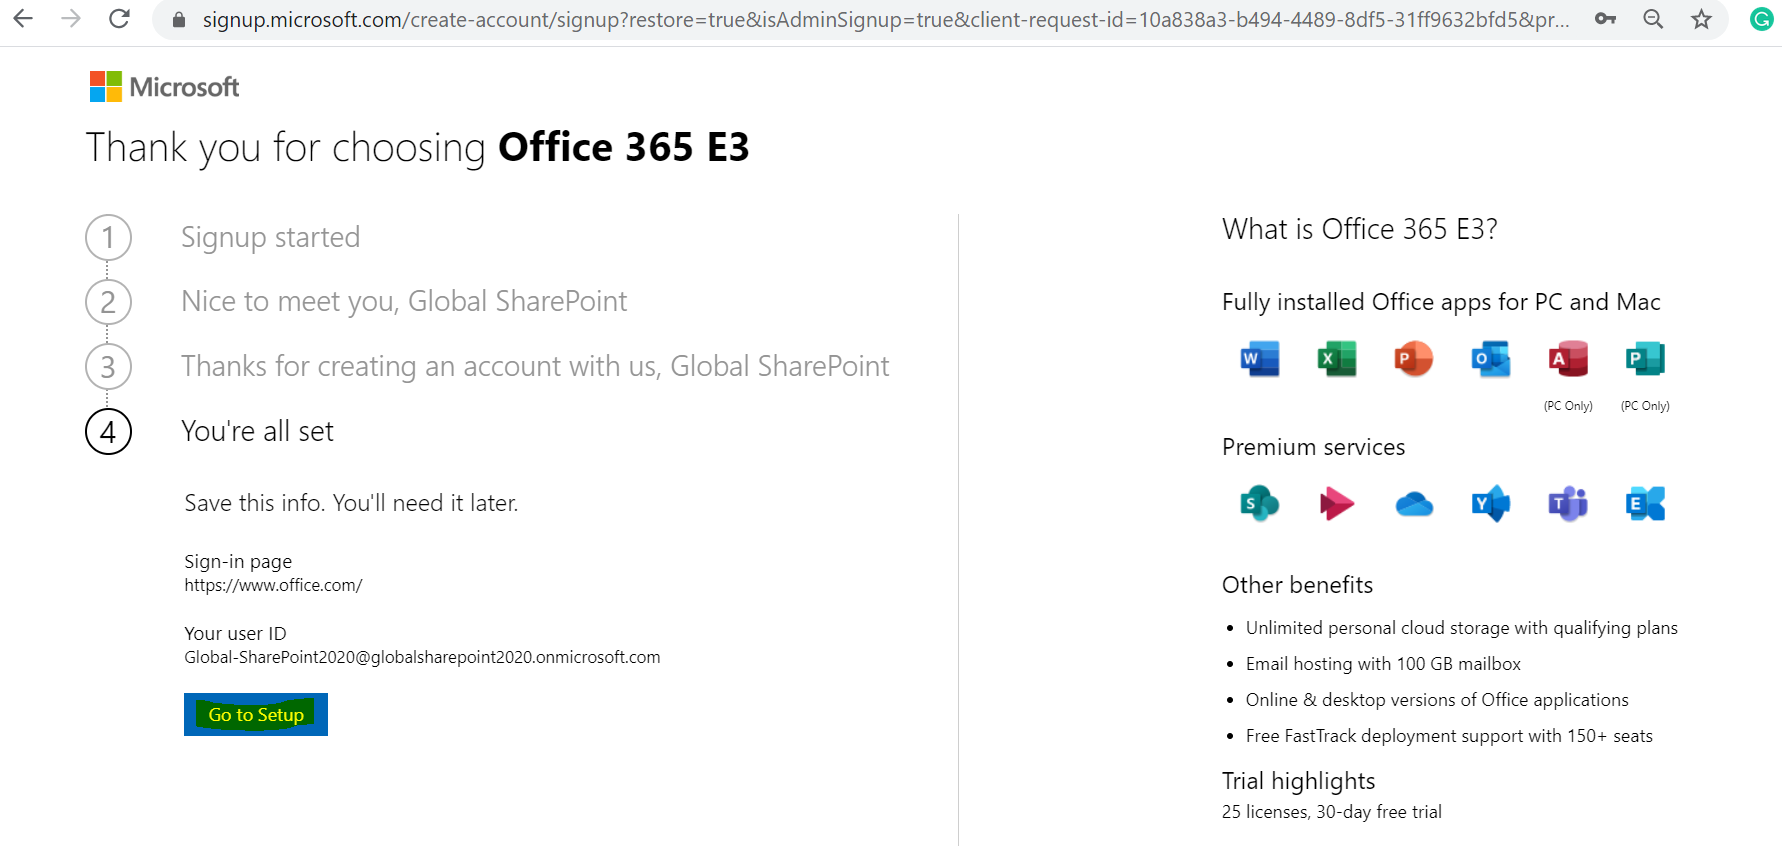 Office 365 E3 Trial - Set up account - You're all set message